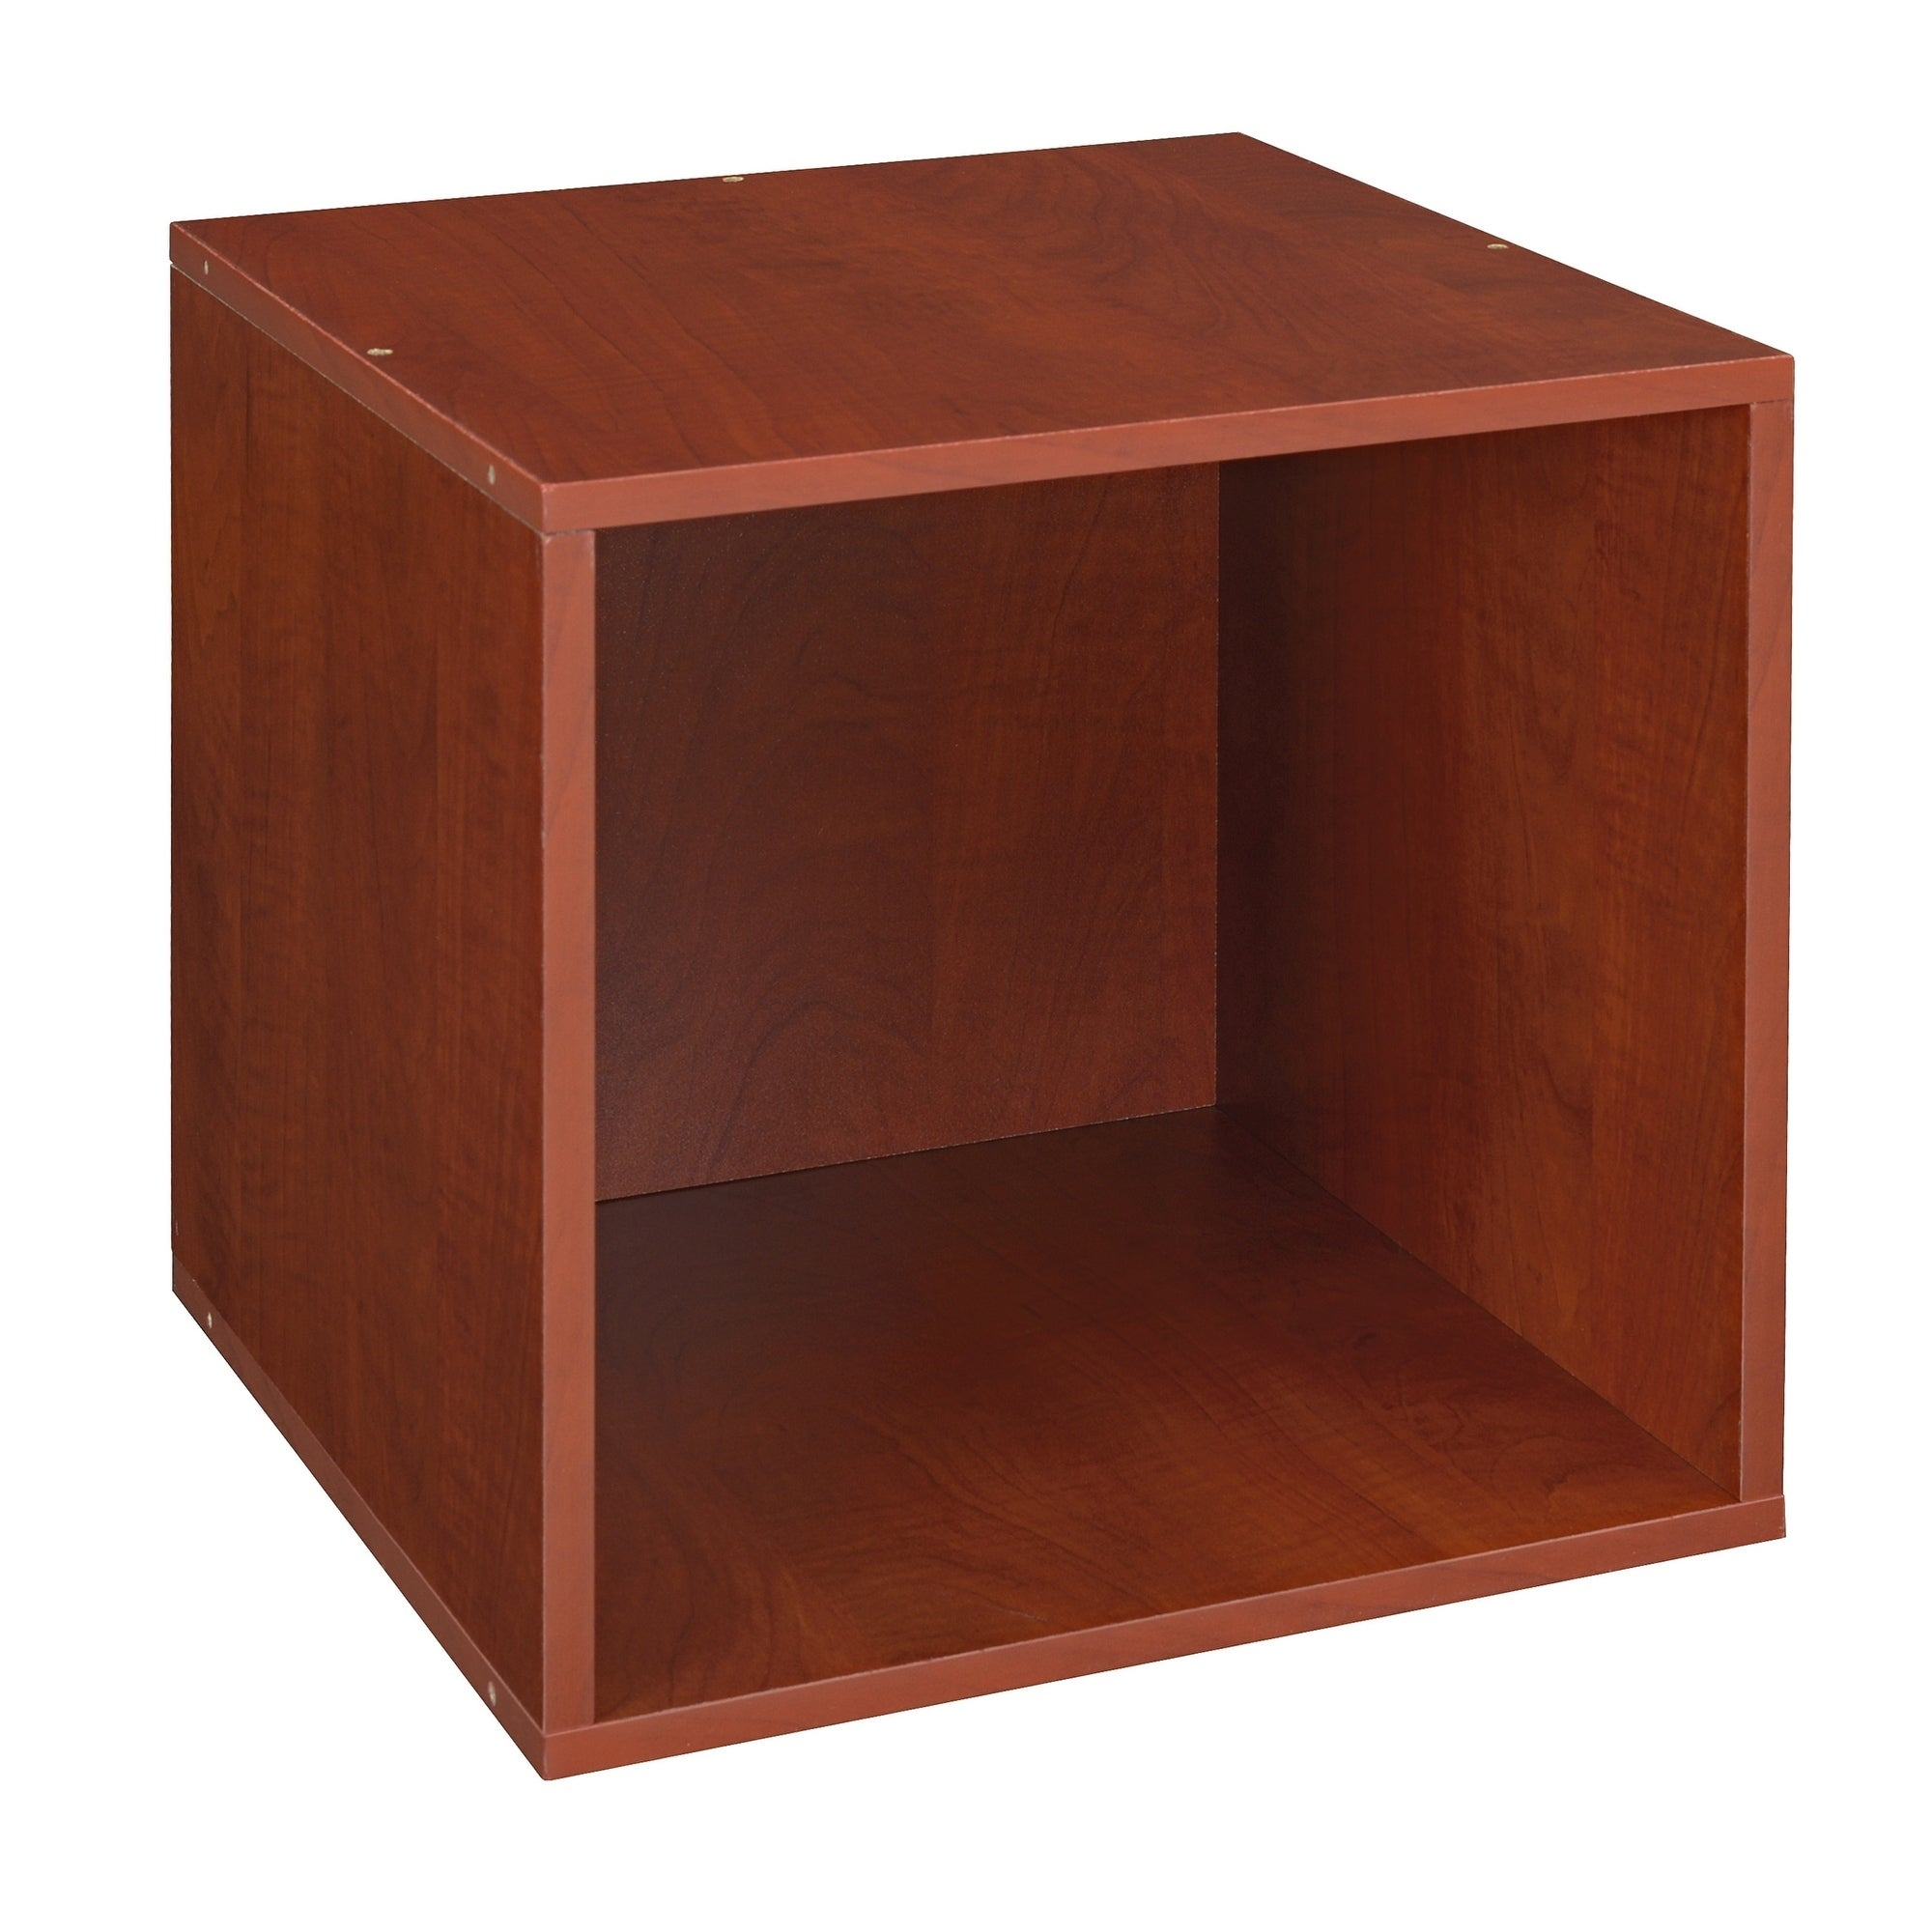 Niche Cubo Stackable Storage Cubes   Free Shipping On Orders Over $45    Overstock   17155944